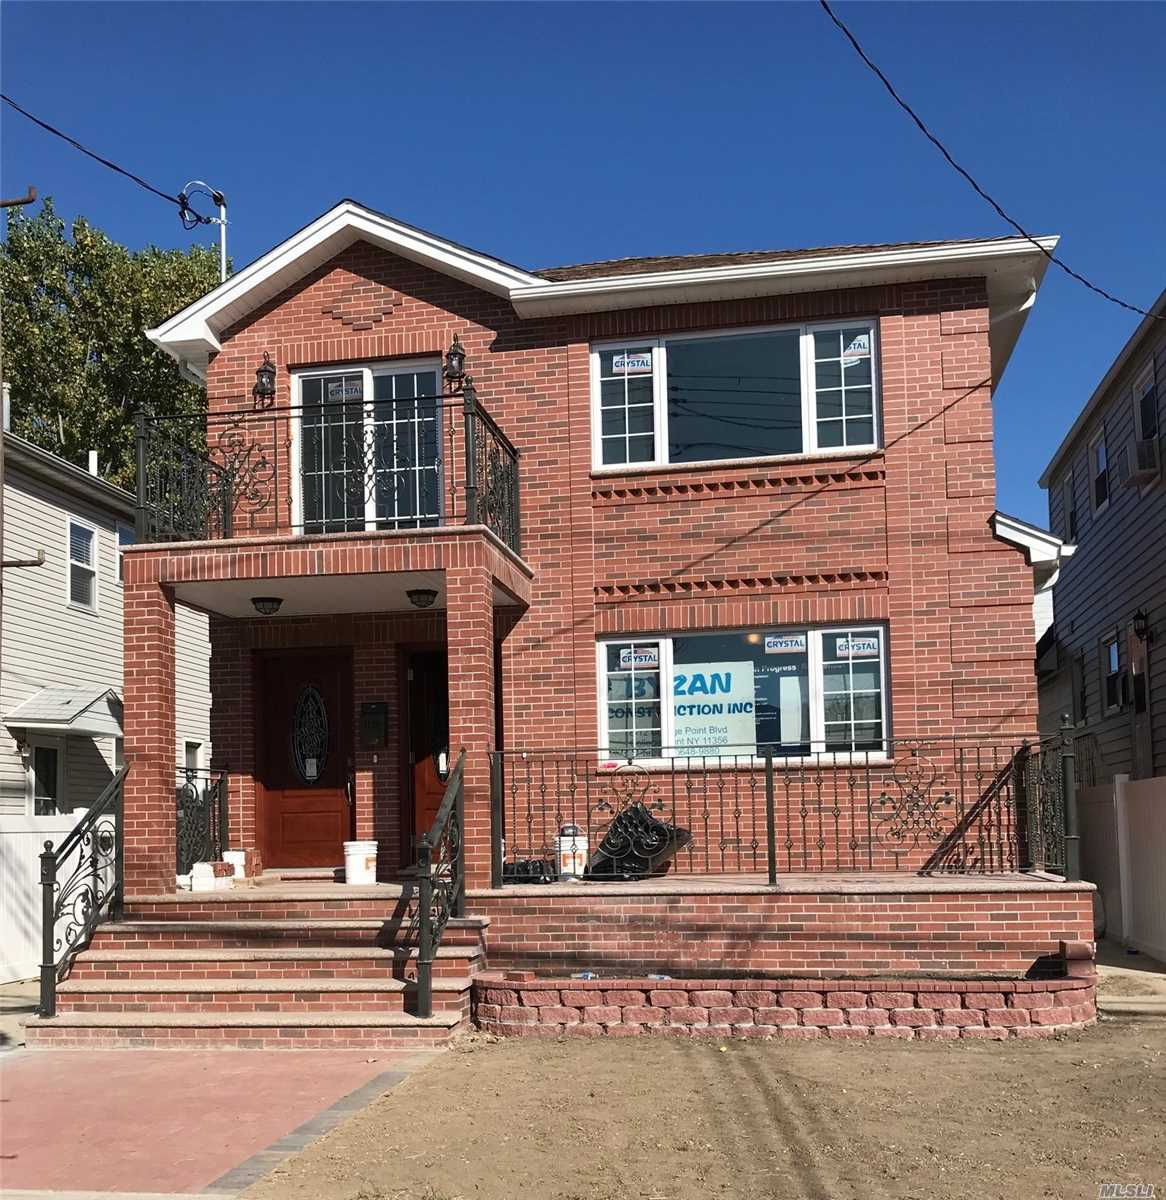 Property for sale at 11-05 128th St, College Point NY 11356, College Point,  New York 11356